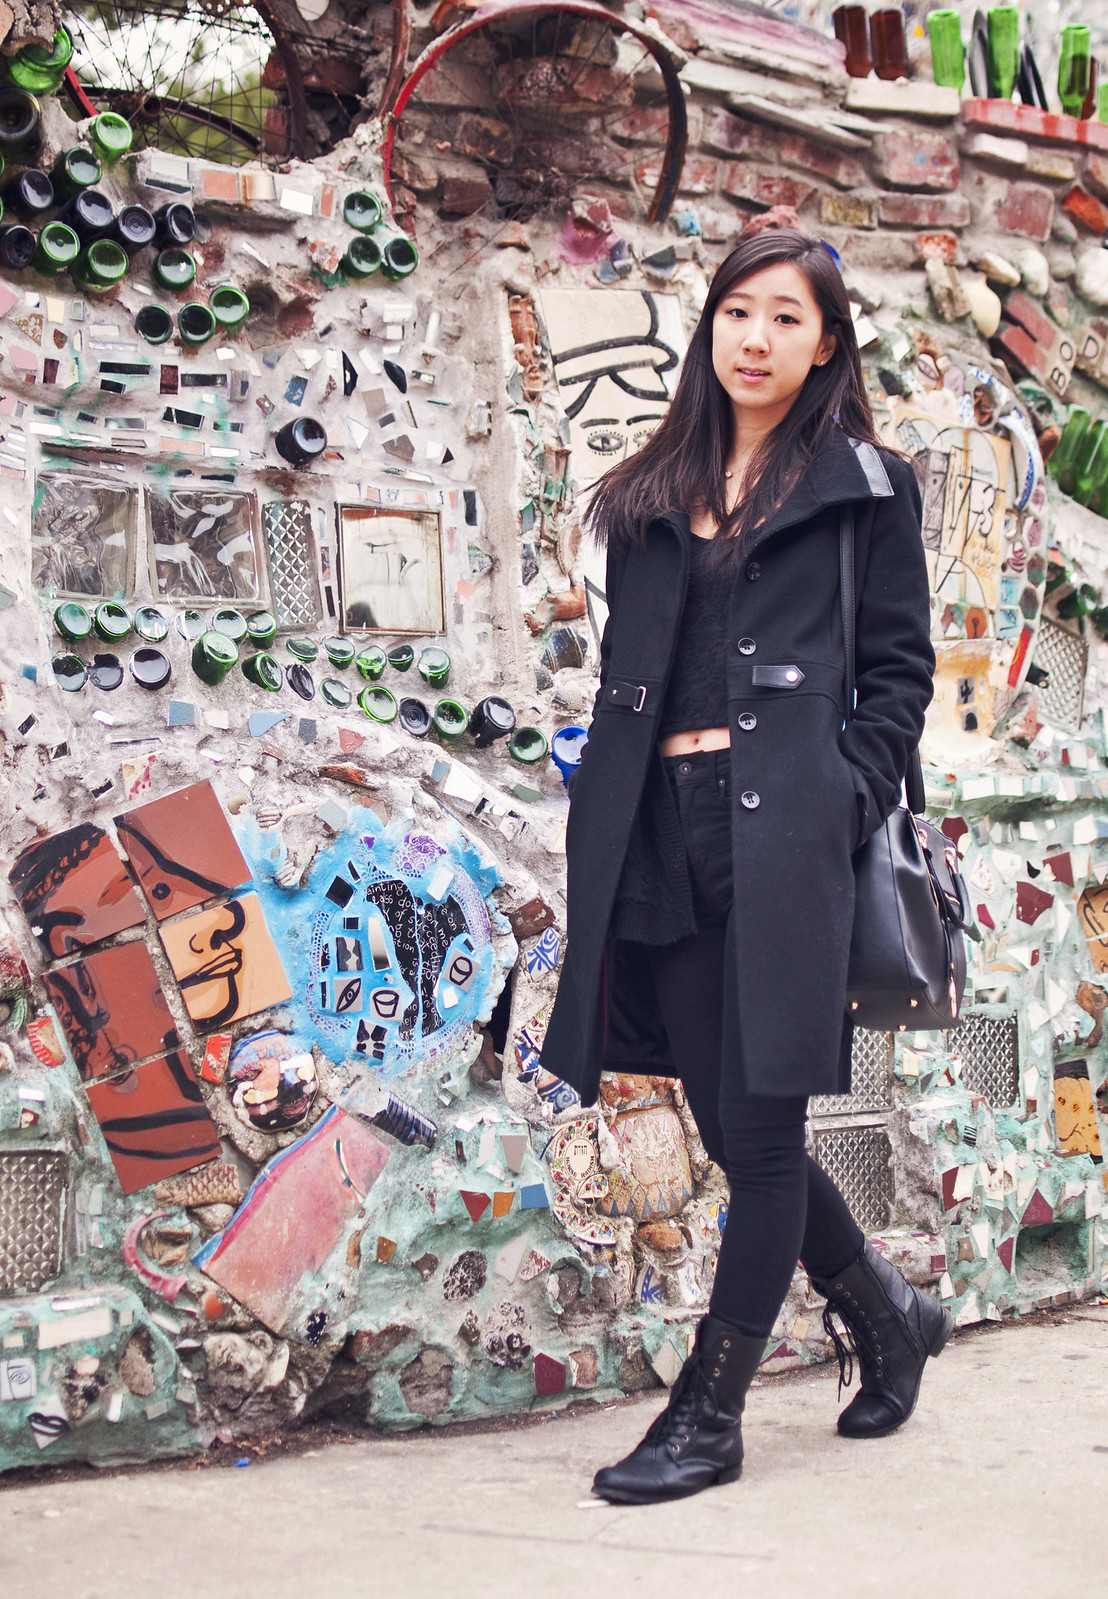 fashion, outfit of the day, personal style, teaforshoe, combat boots, high waisted jeans, black coat, all black outfit, winter fashion, spring fashion, h&m jeans, via spiga coat